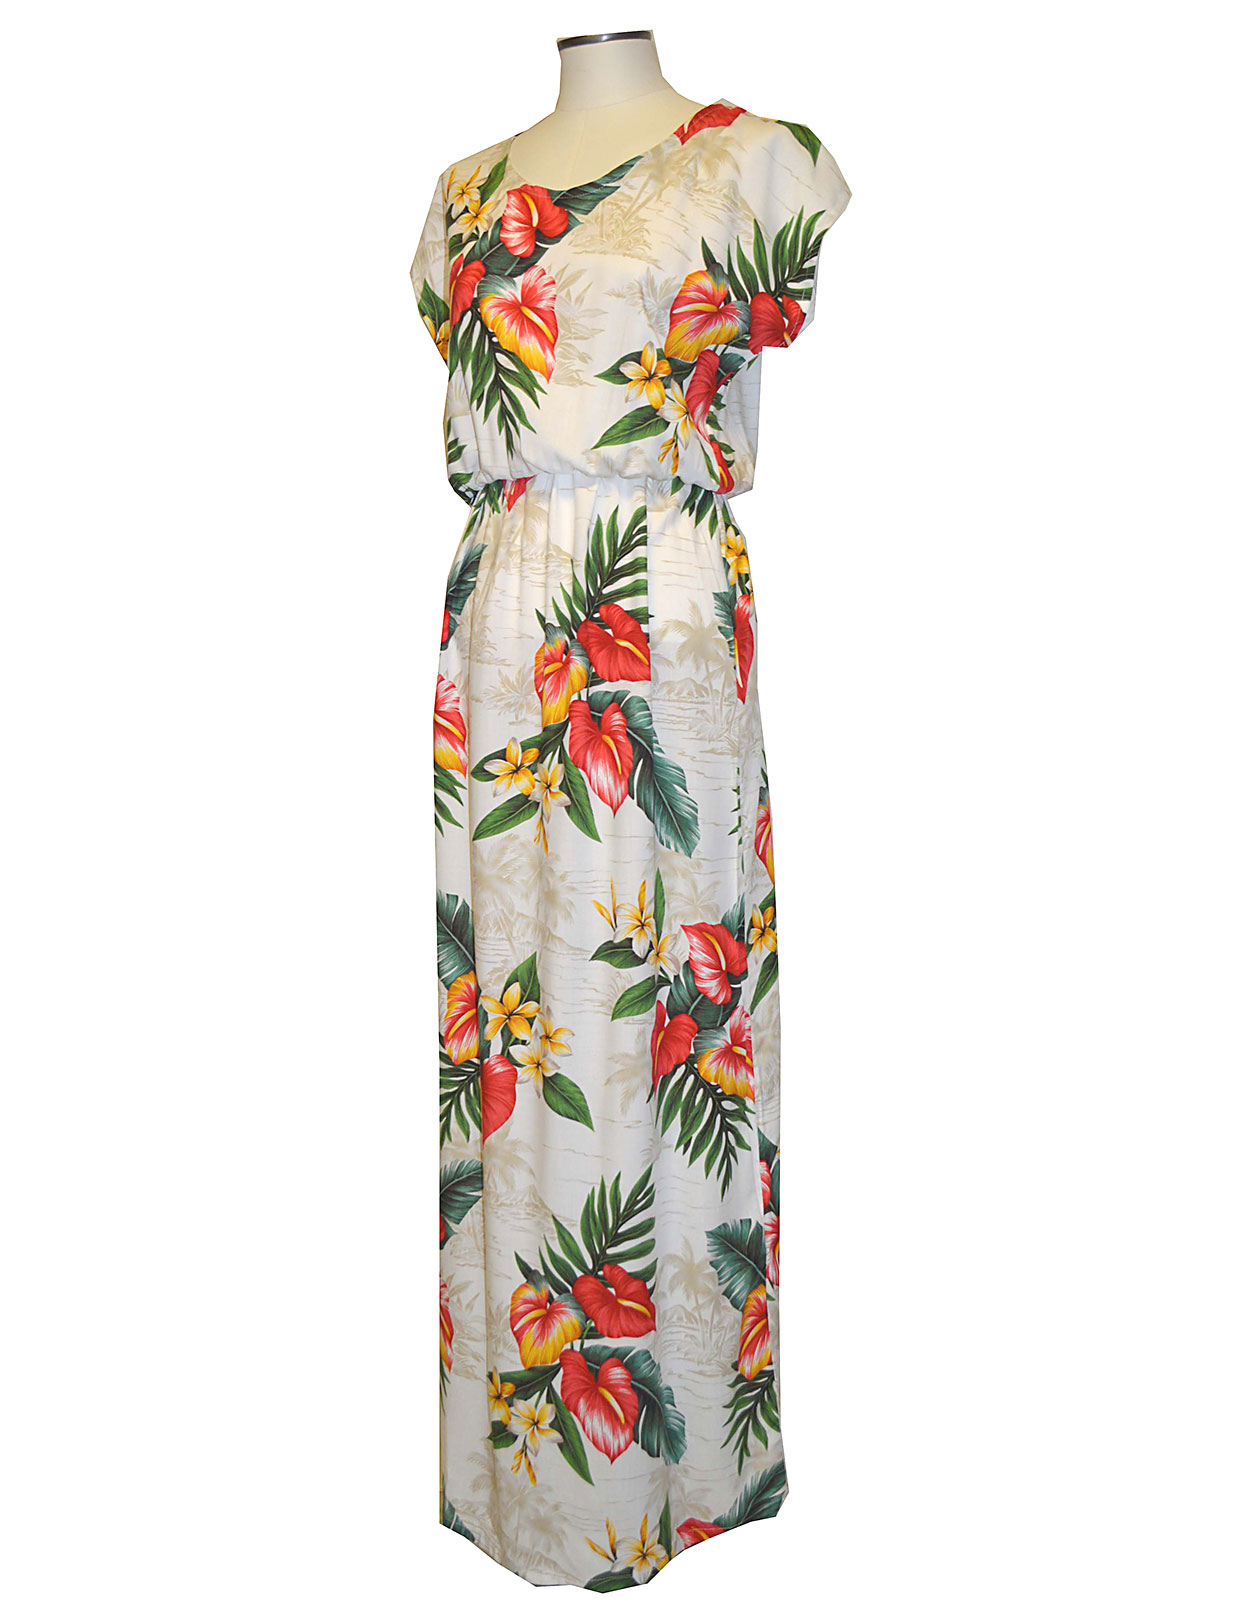 Awesome Darling Pinafore Style Vintage Hawaiian Dress By The Ritz The Dress Has A High Waist And Button Front BodiceThe Skirt Edge Has A Ruffle The Colors Are Bold Hot Pink, Greens, Grey, Yellow Gold Blues And Dark Green The Dress Is Preowned